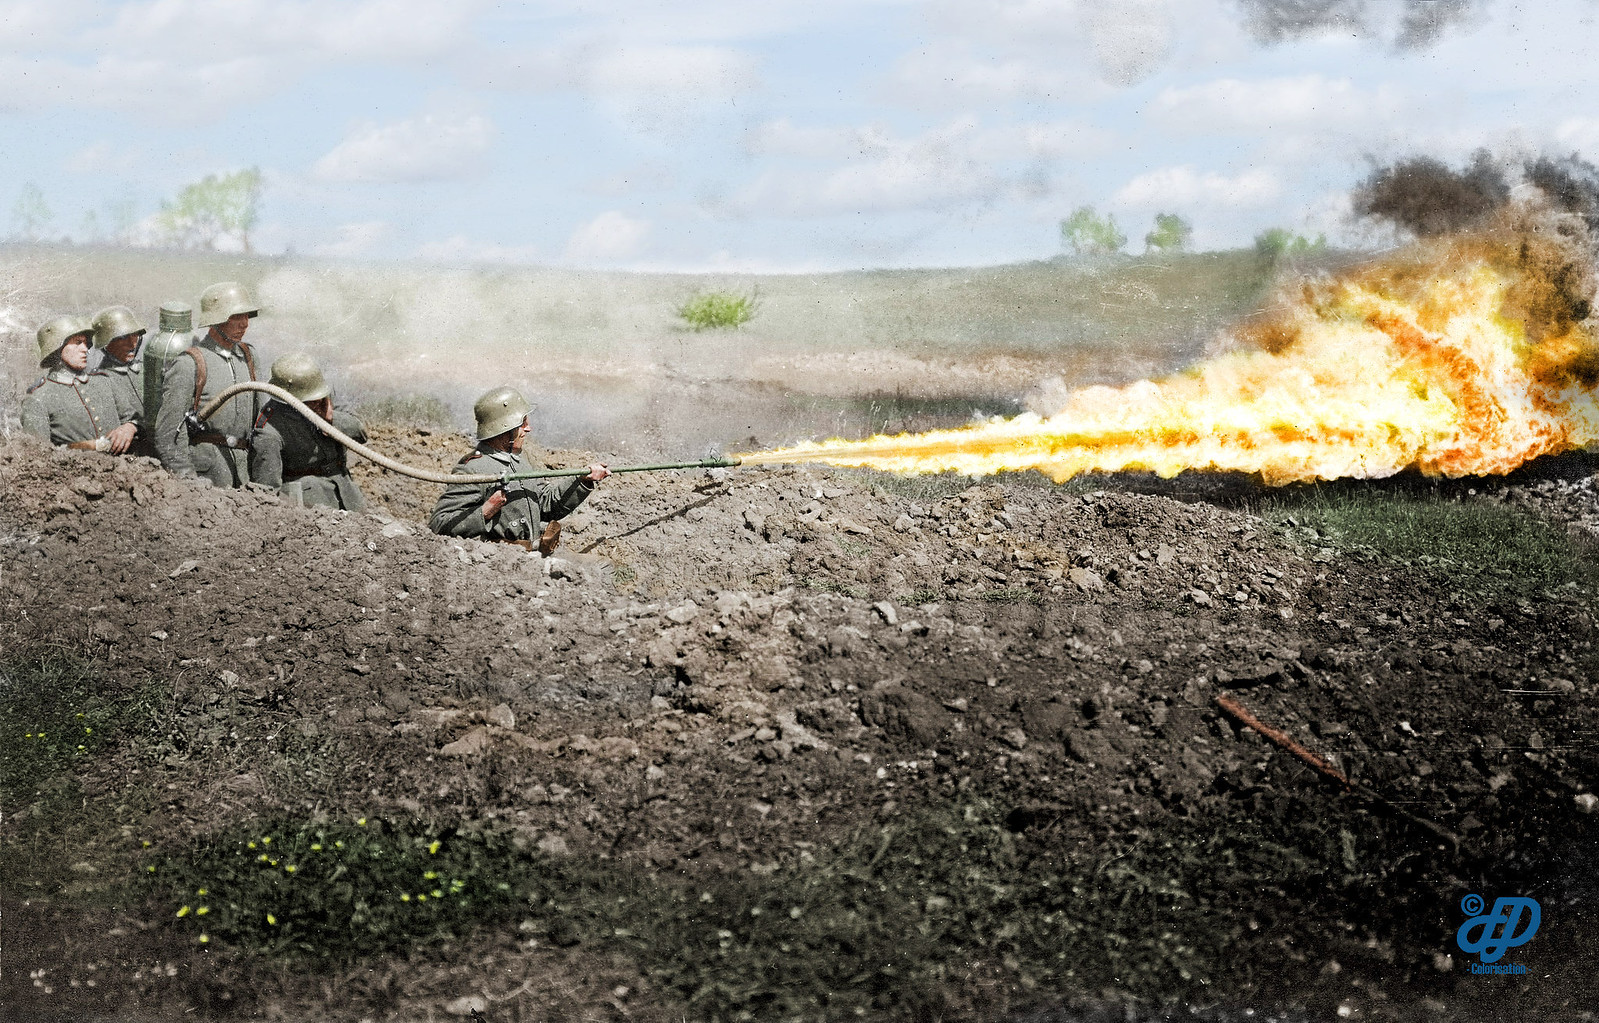 Flamethrower pioneers of Assault Battalion No. 5 (Rohr)